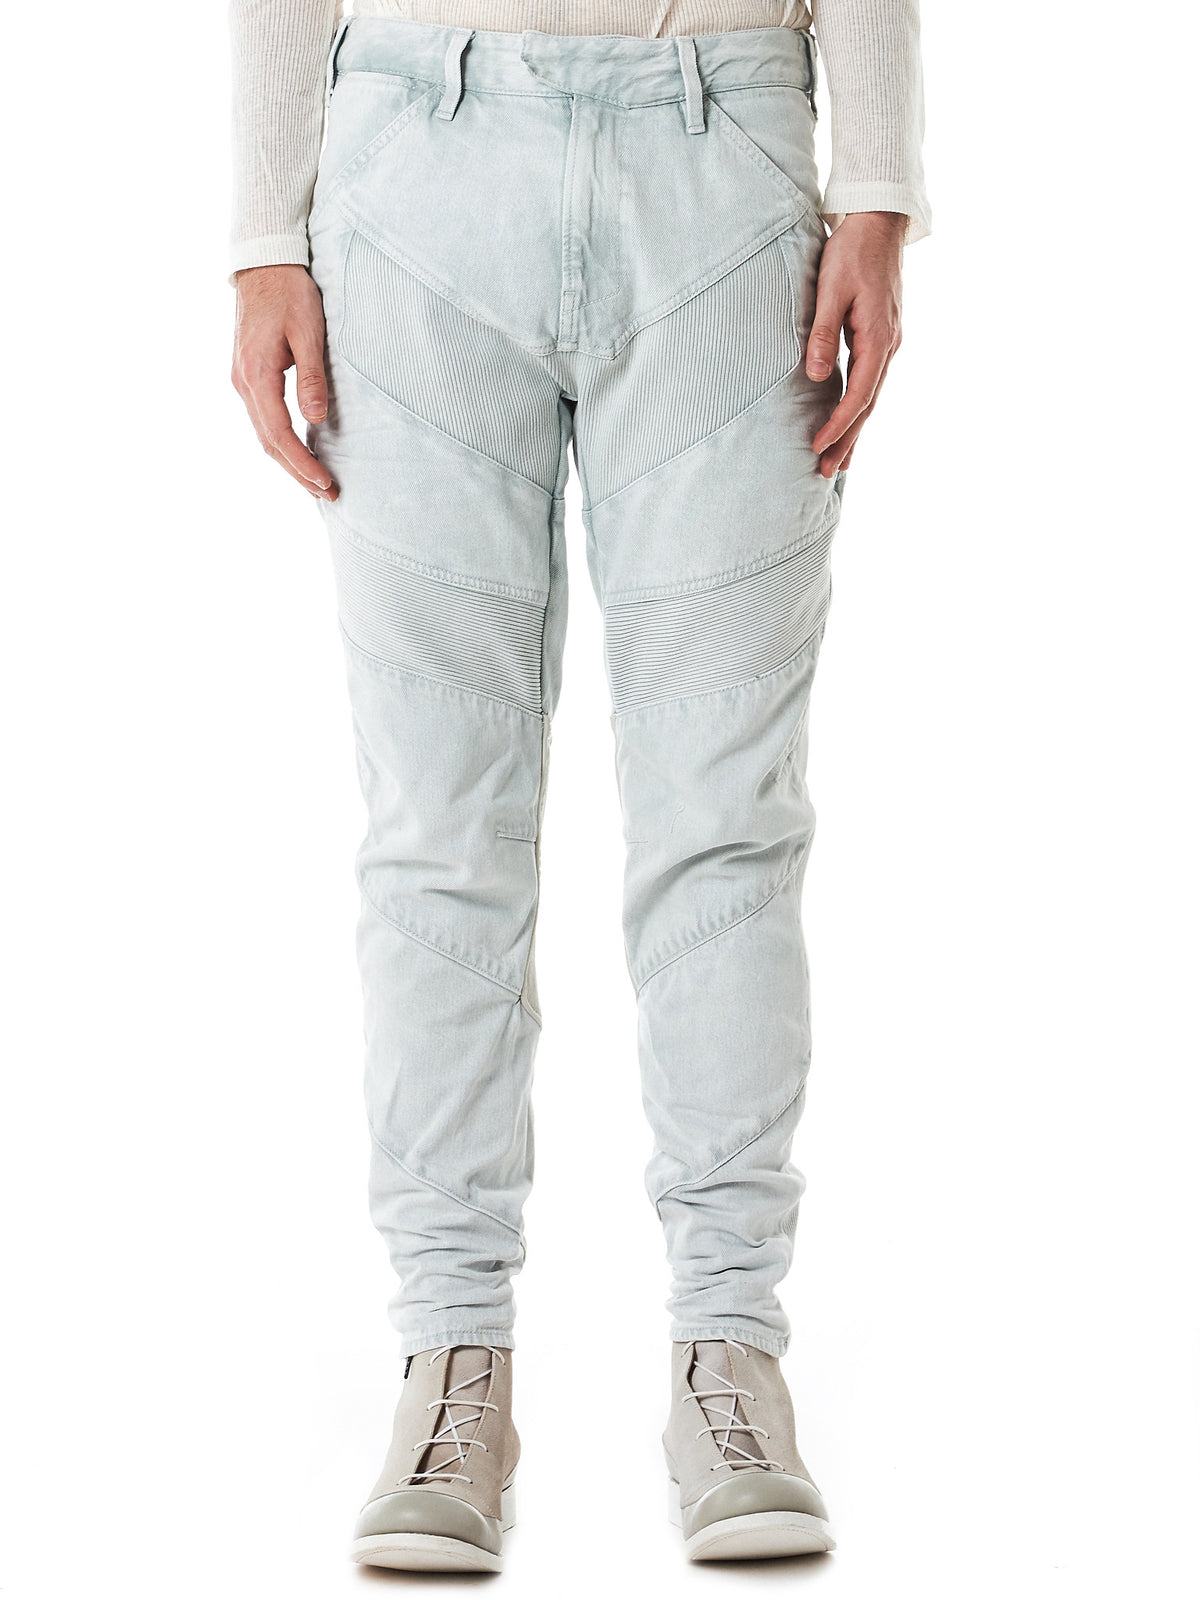 Motac-X Tapered Denim Jeans (D05268-9112-8027)